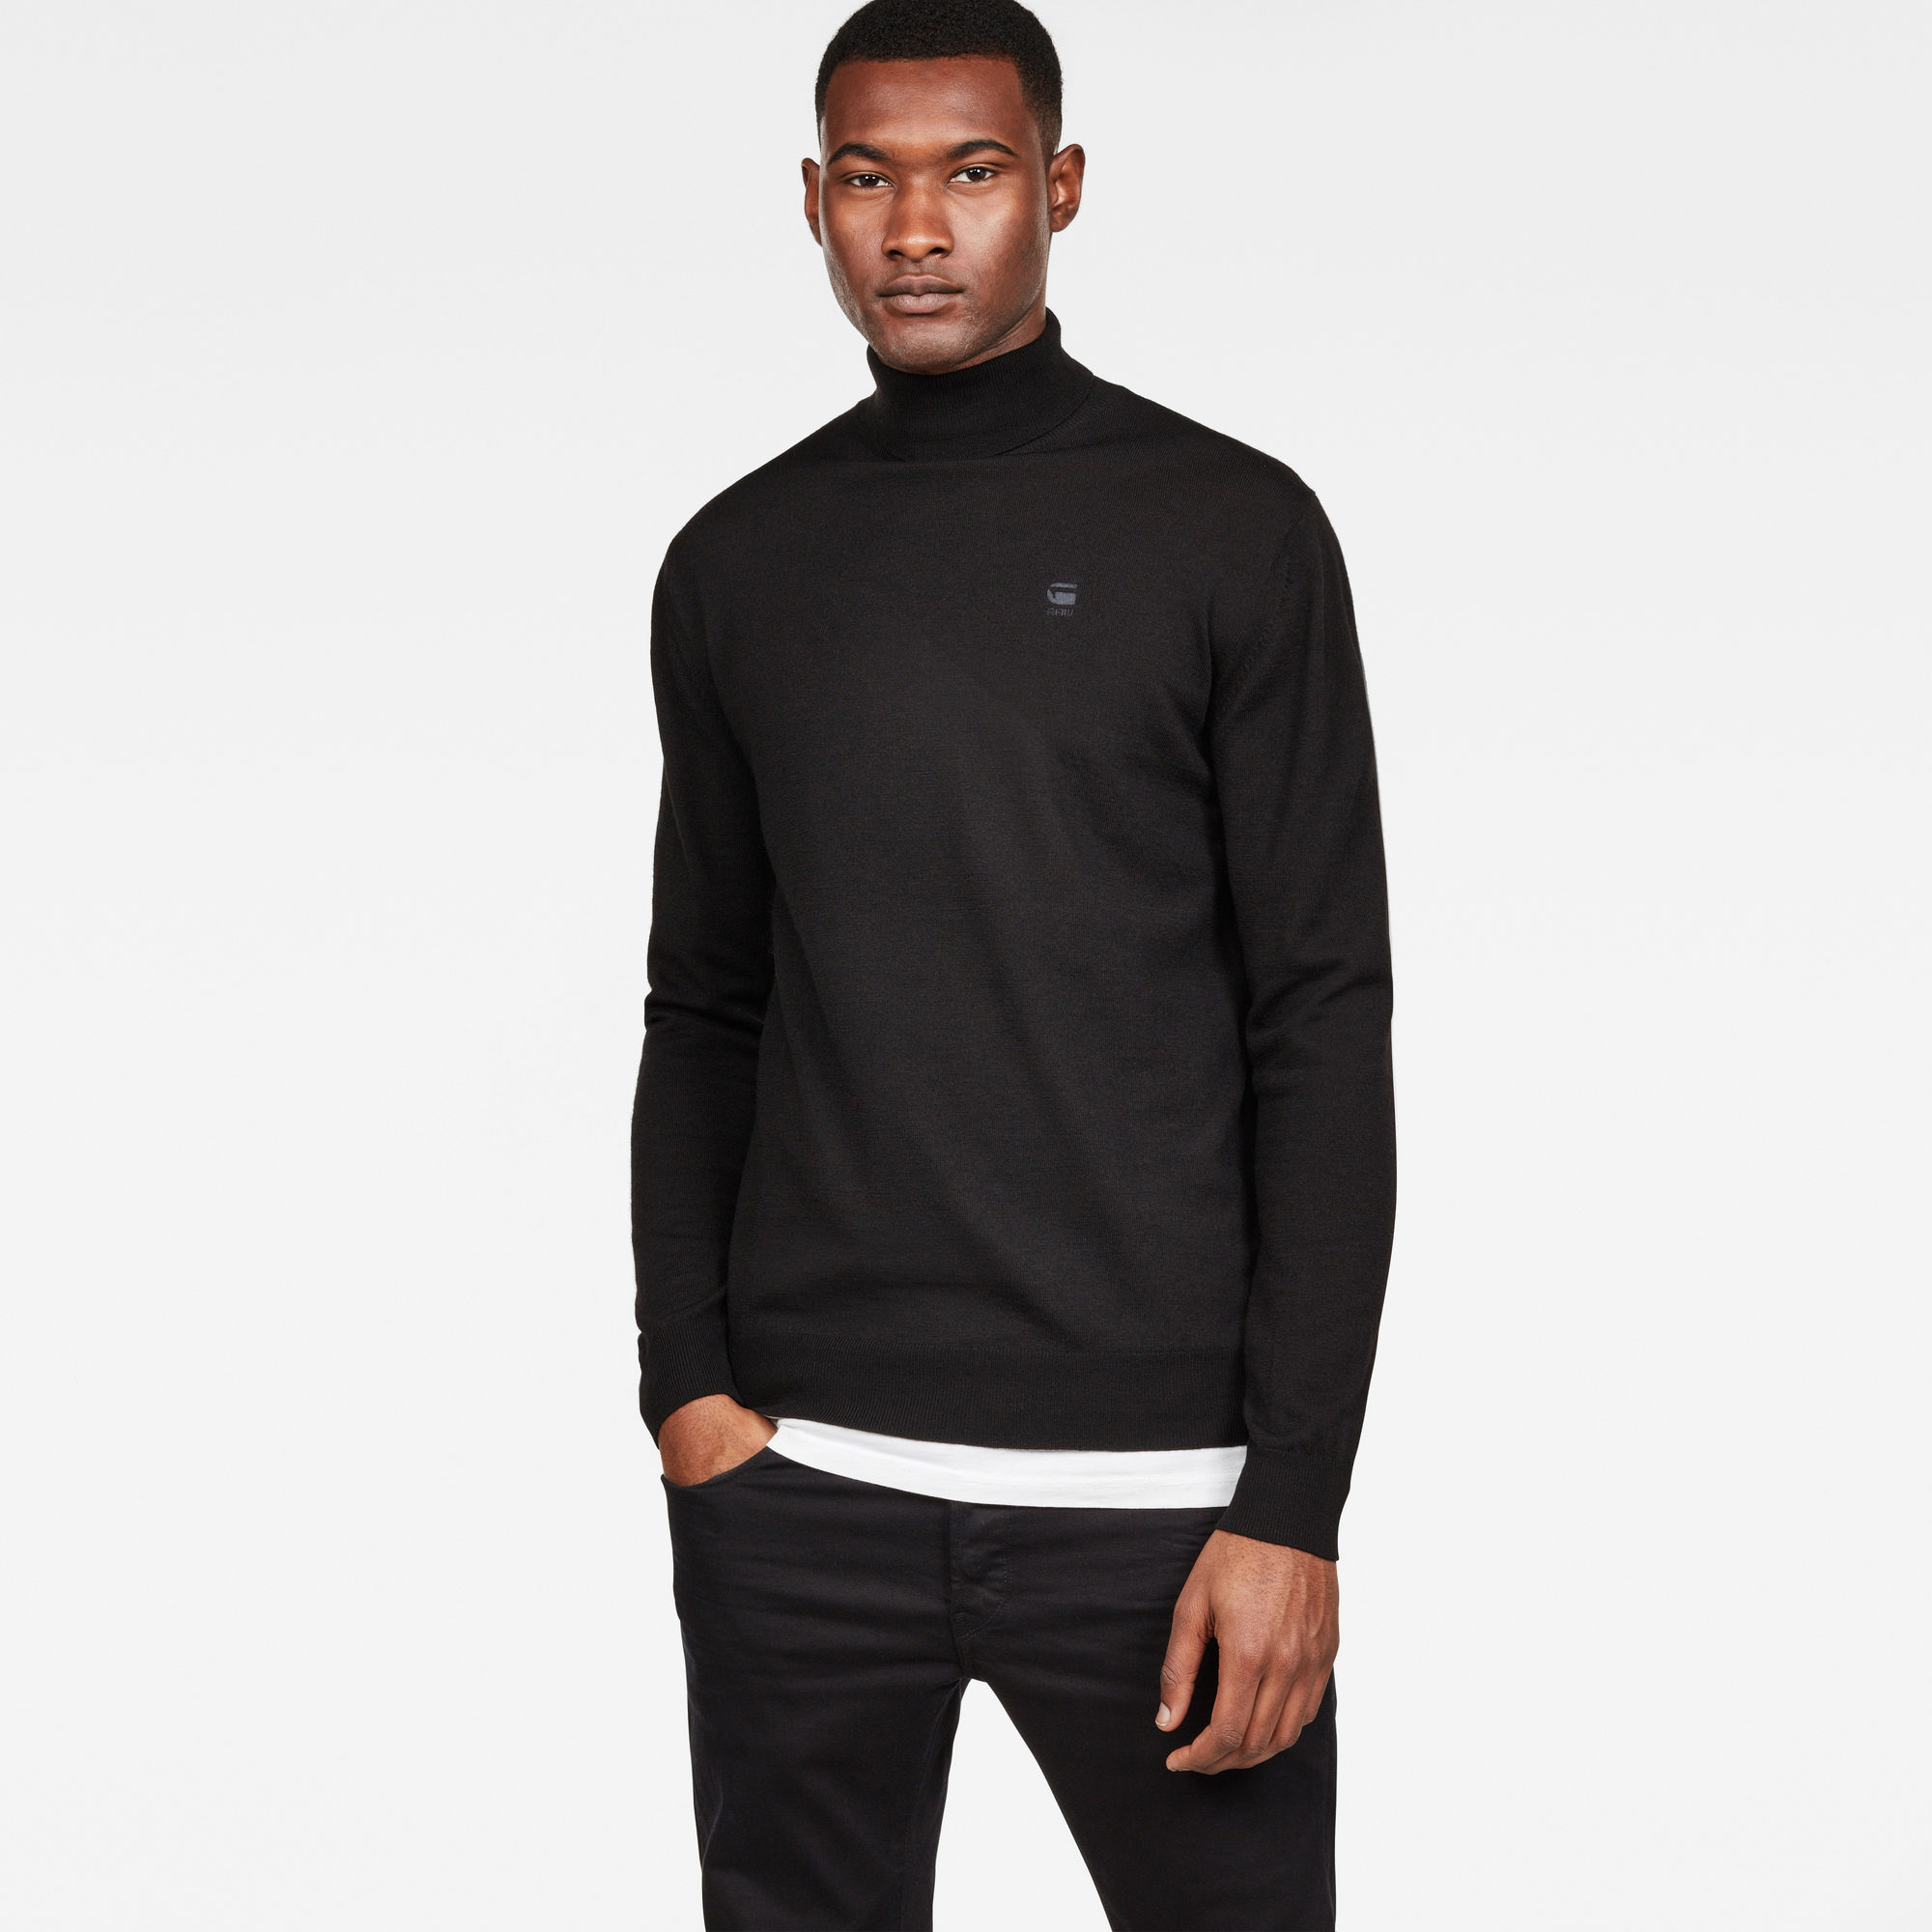 Image of G Star Raw Core Turtle Knit